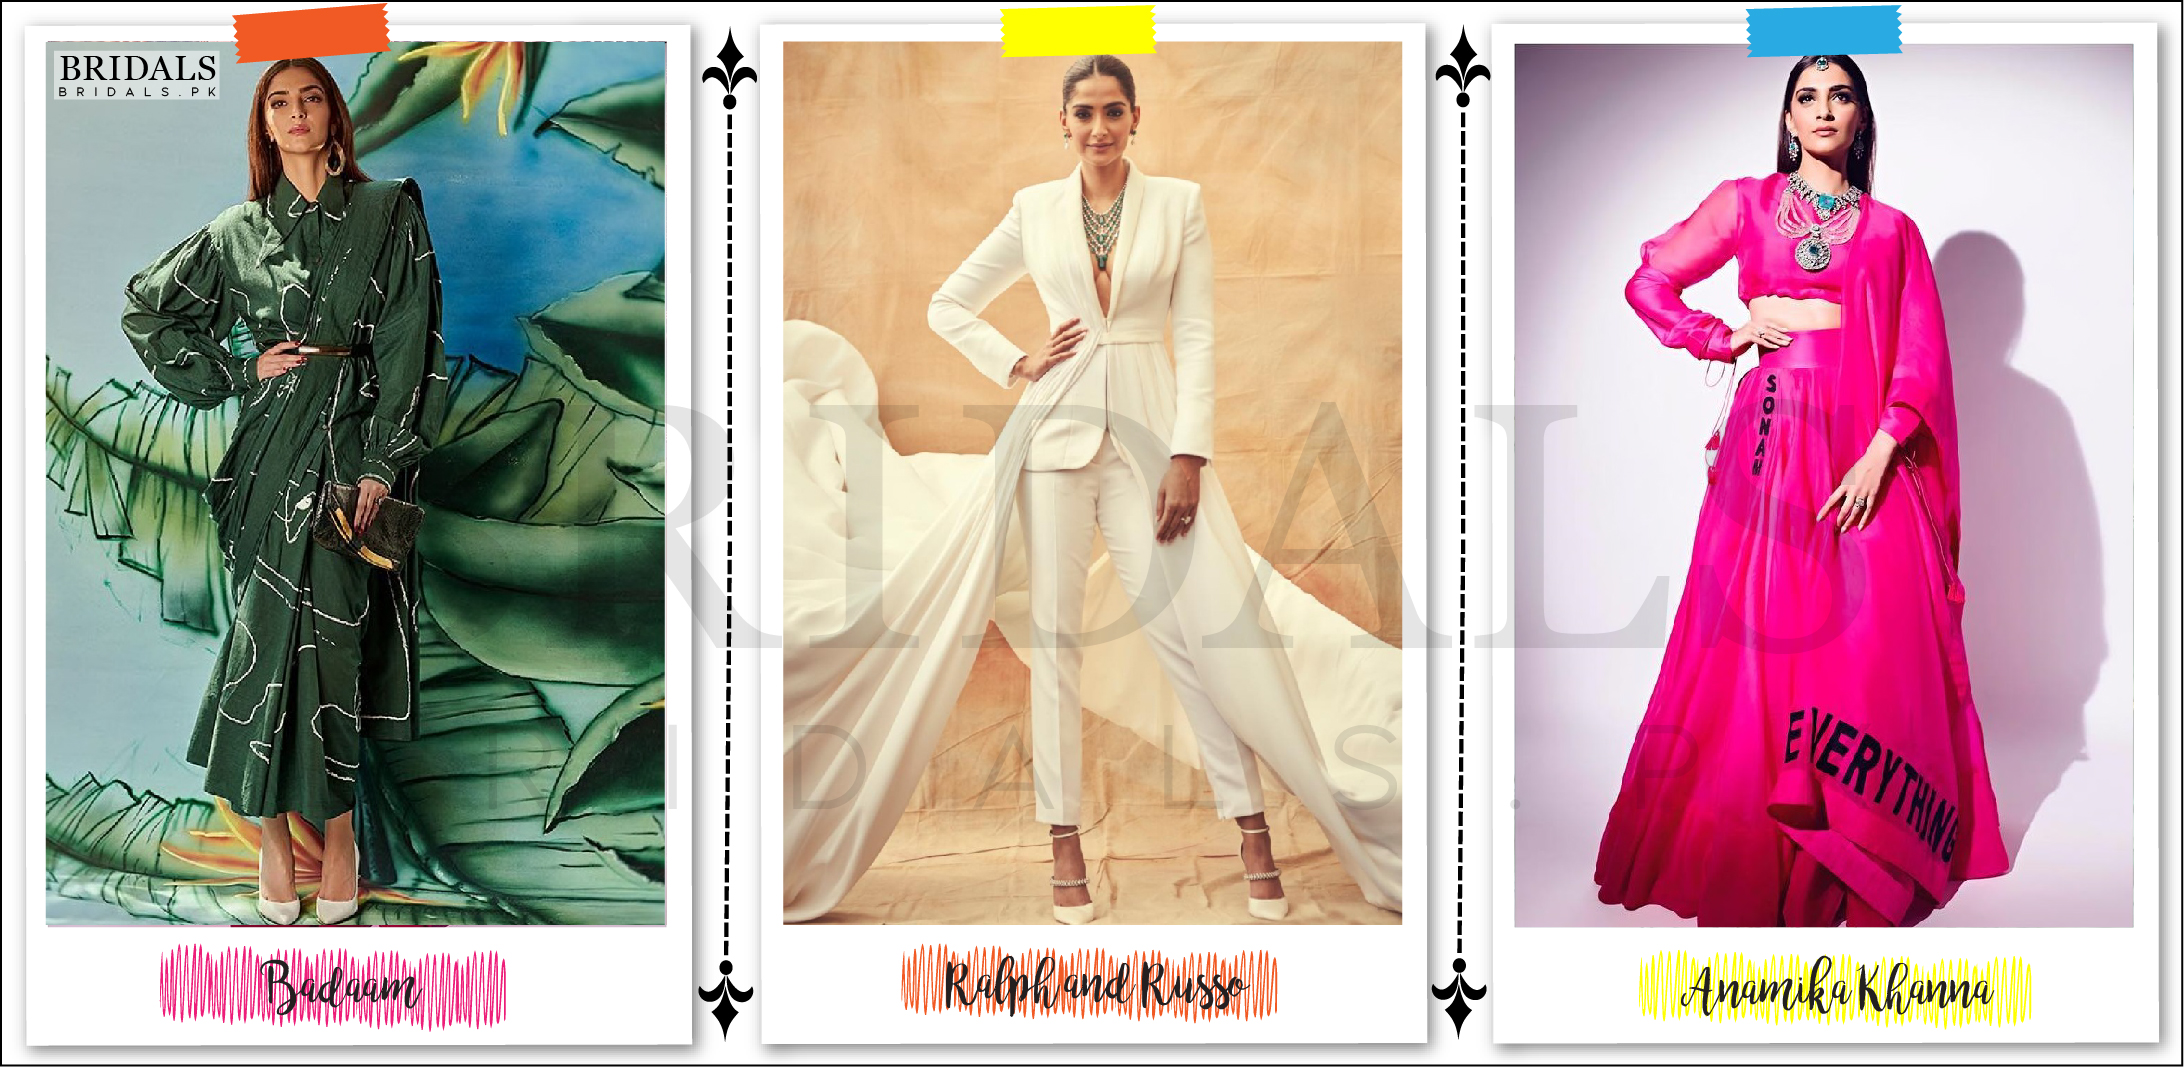 12 Times Sonam K. Ahuja Completely Ruled The Fashion Front Seat!